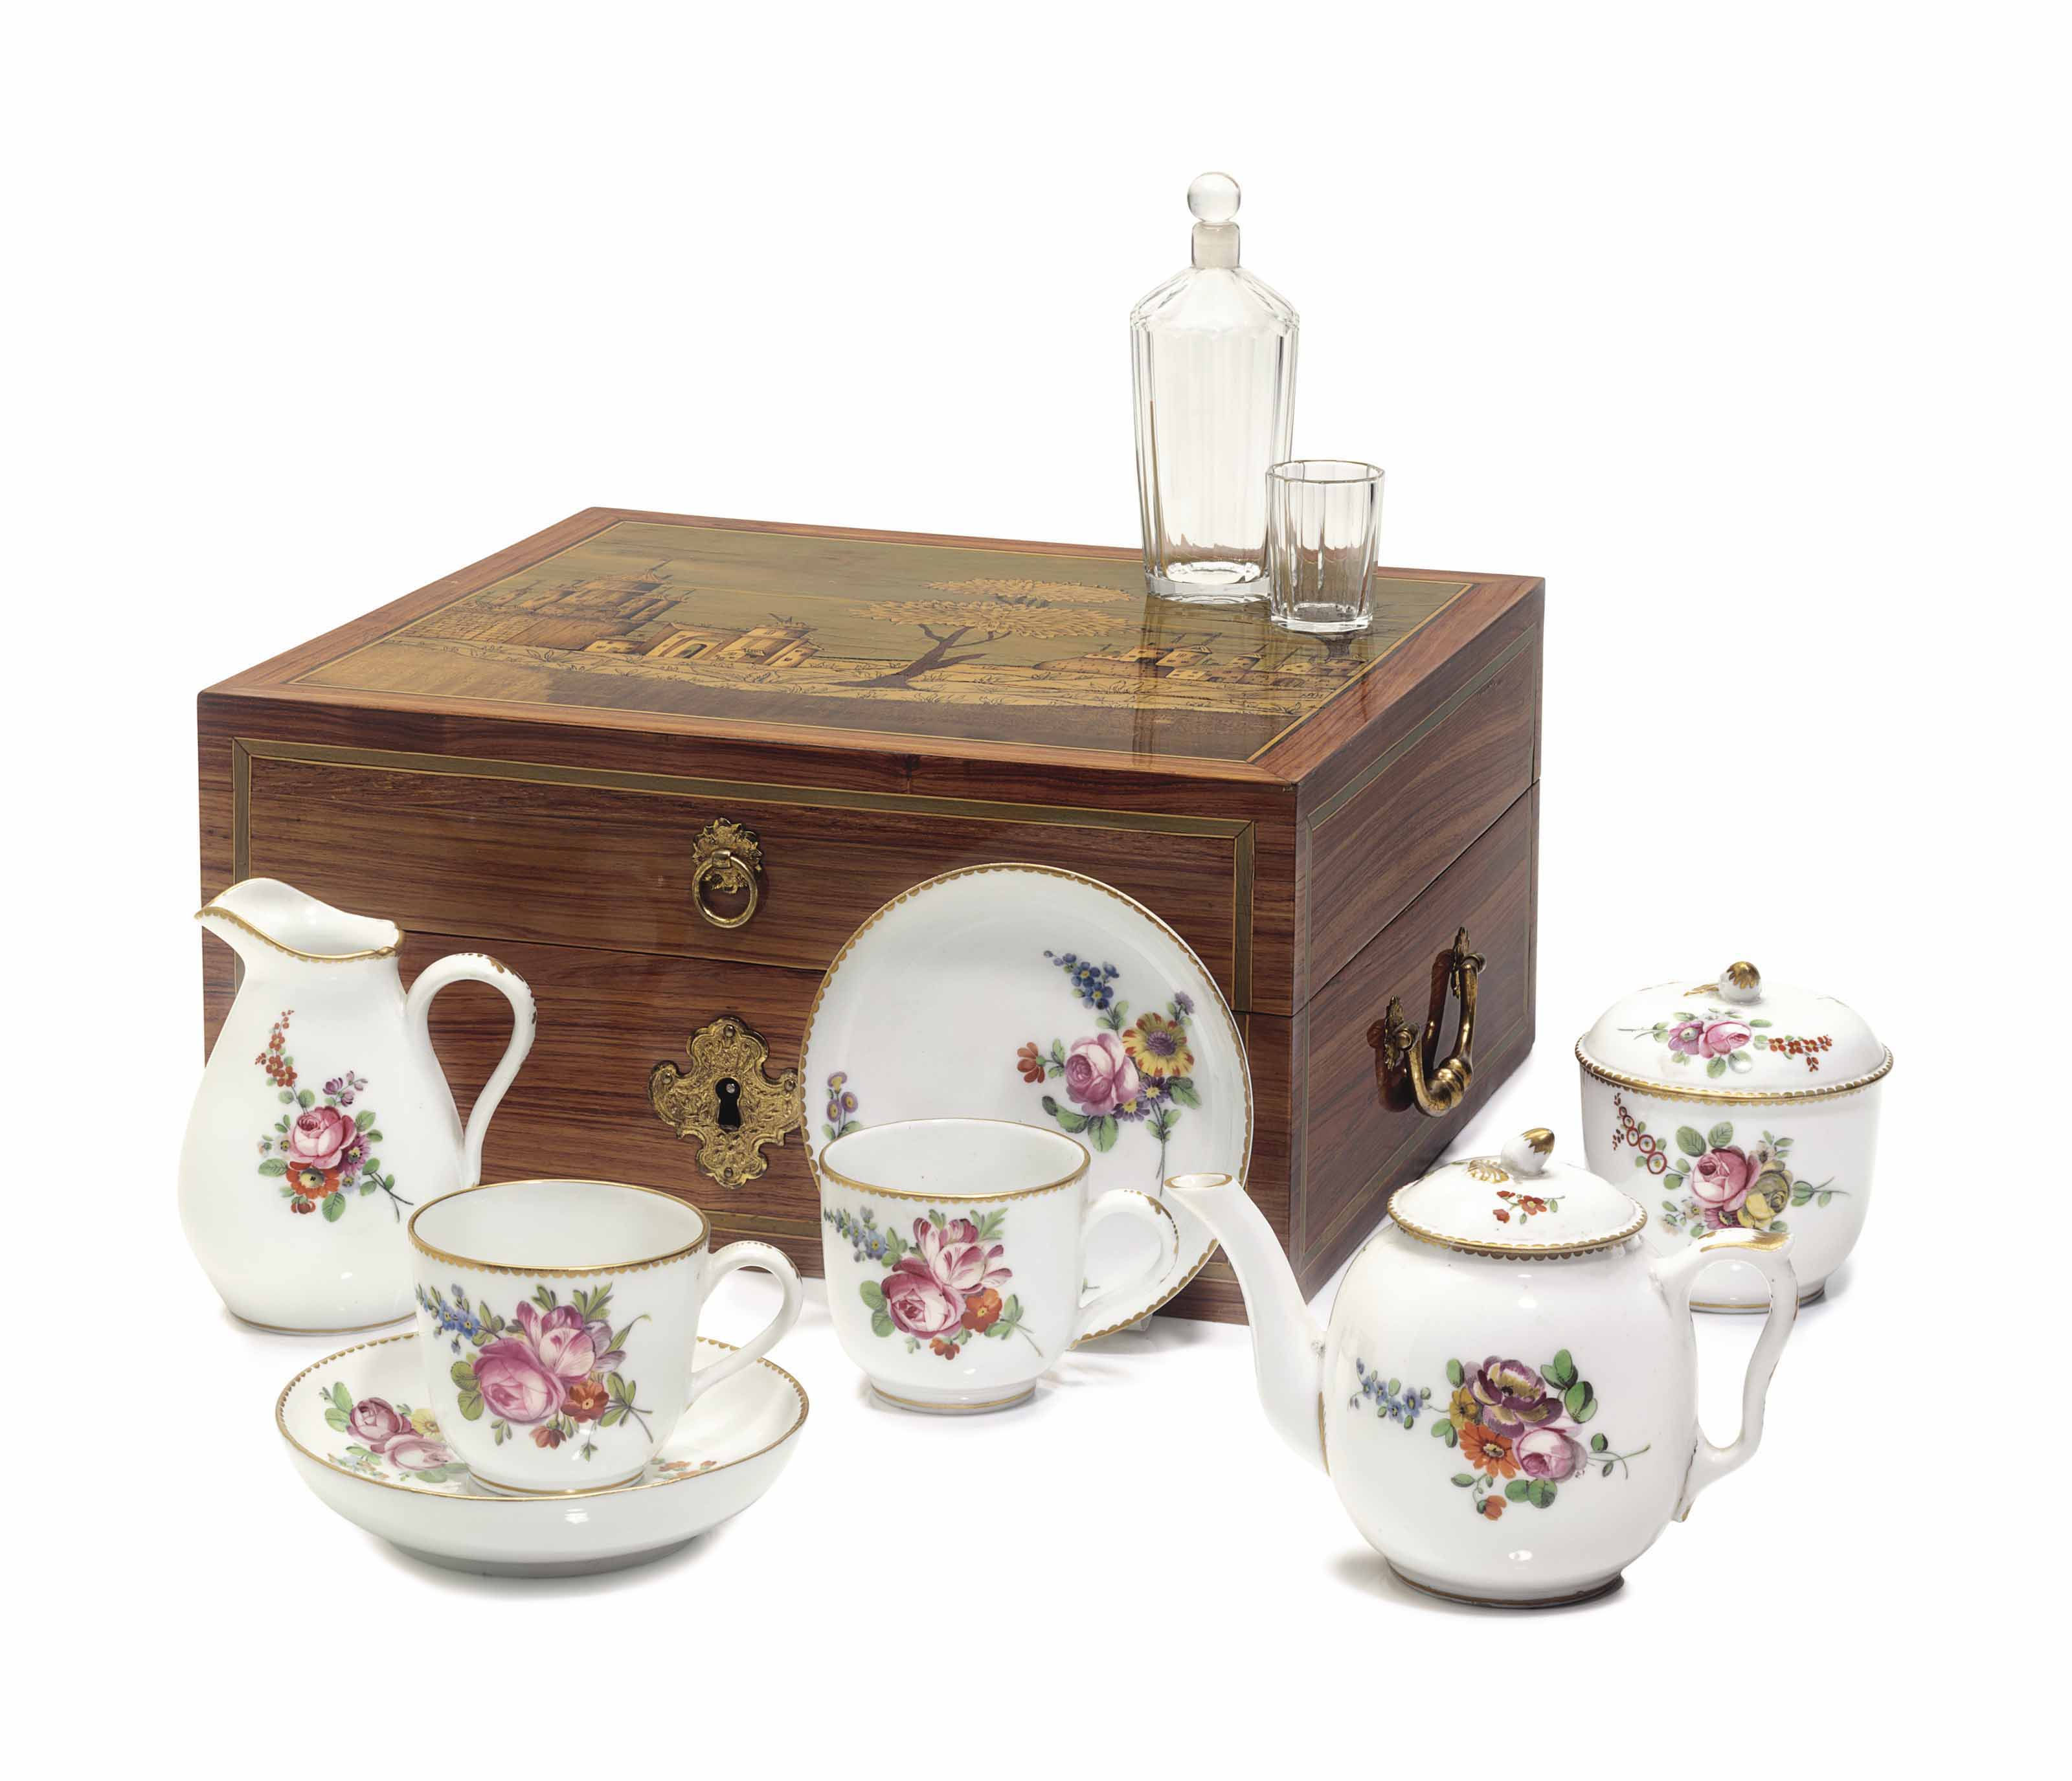 A LOCRE PORCELAIN, SILVER AND GLASS TRAVELING SERVICE IN A LOUIS XVI TULIPWOOD MARQUETRY BOX